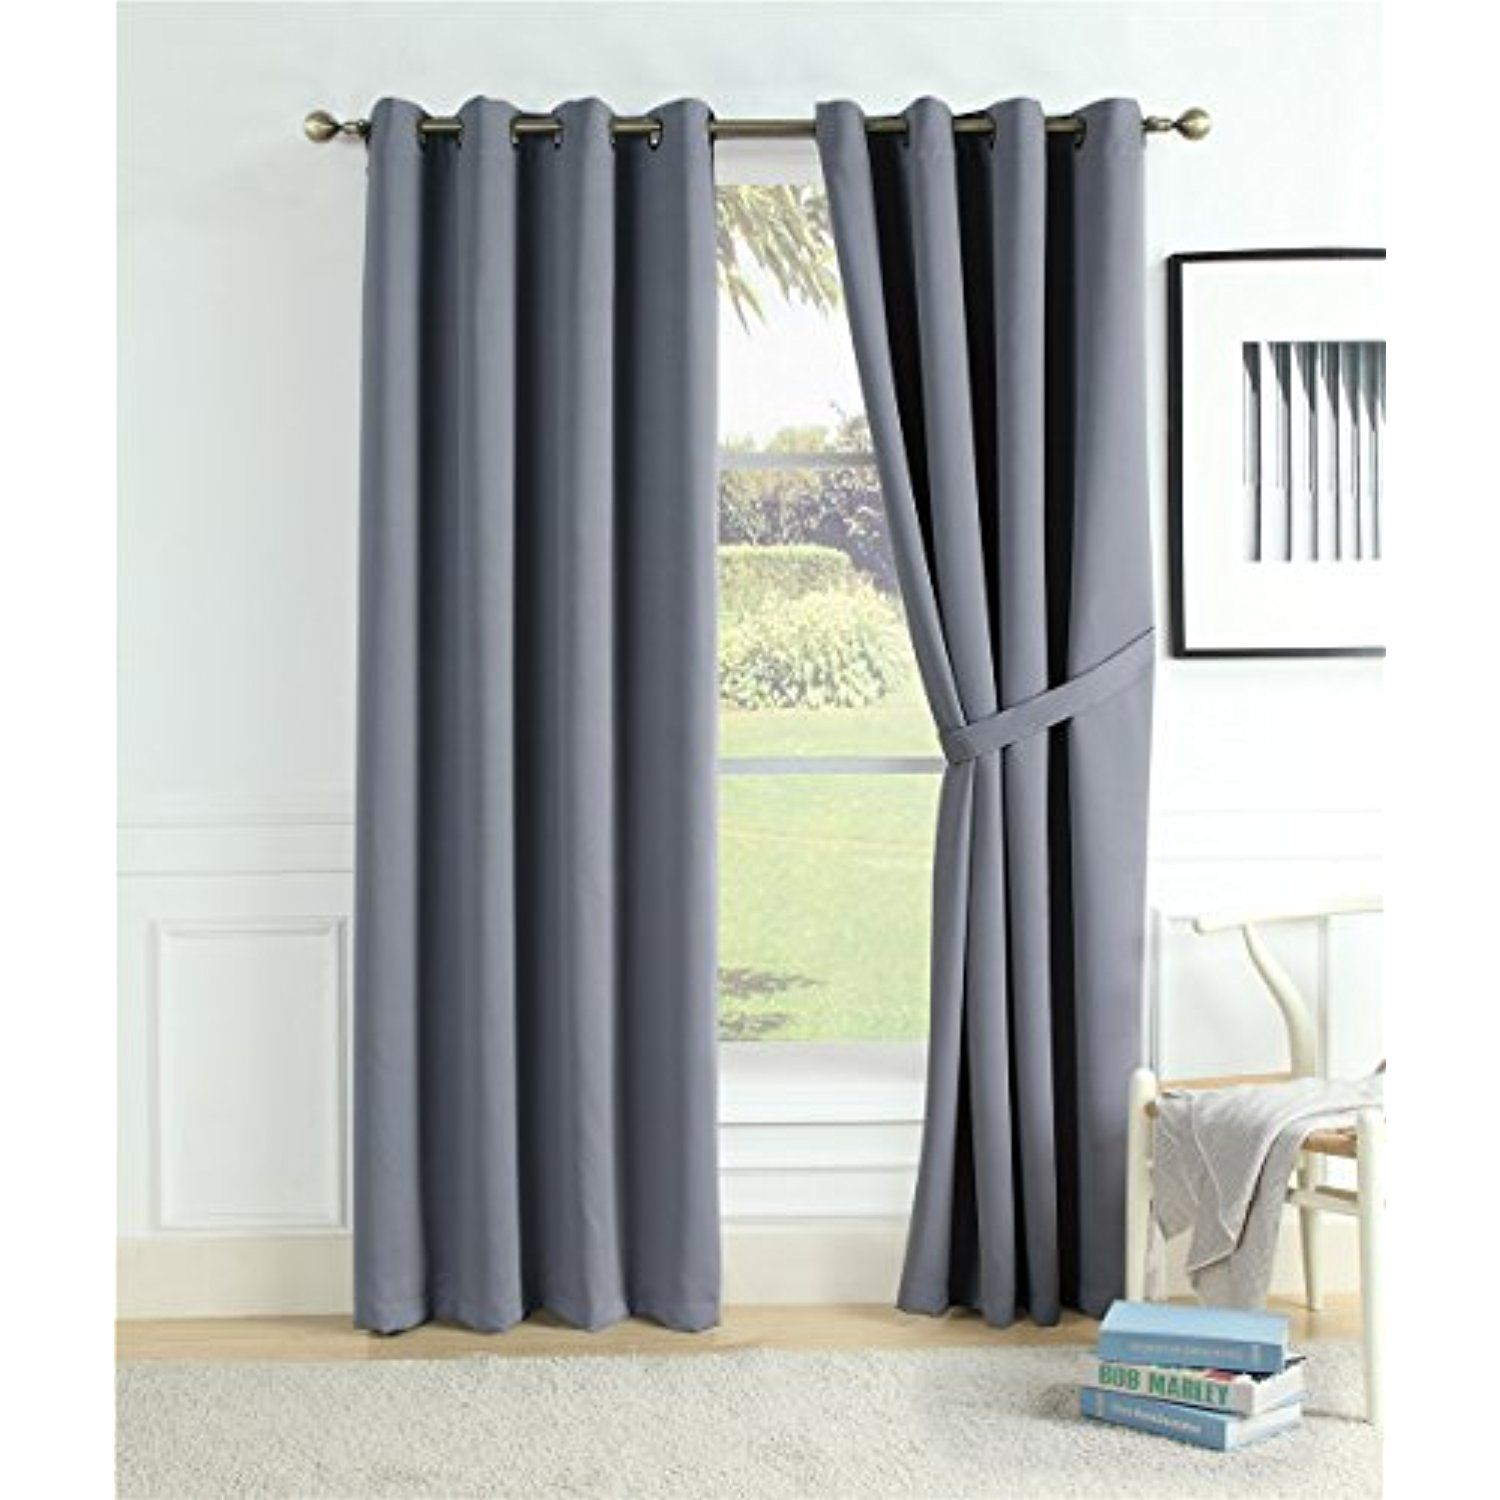 0d90df0e584c84 Home Queen Premium Thermal Insulated Blackout Curtains Window Treatment  Room Darkening Grommet Window Drapes for Bedroom 52 X 84 Inches,2 Panels  with Tie ...